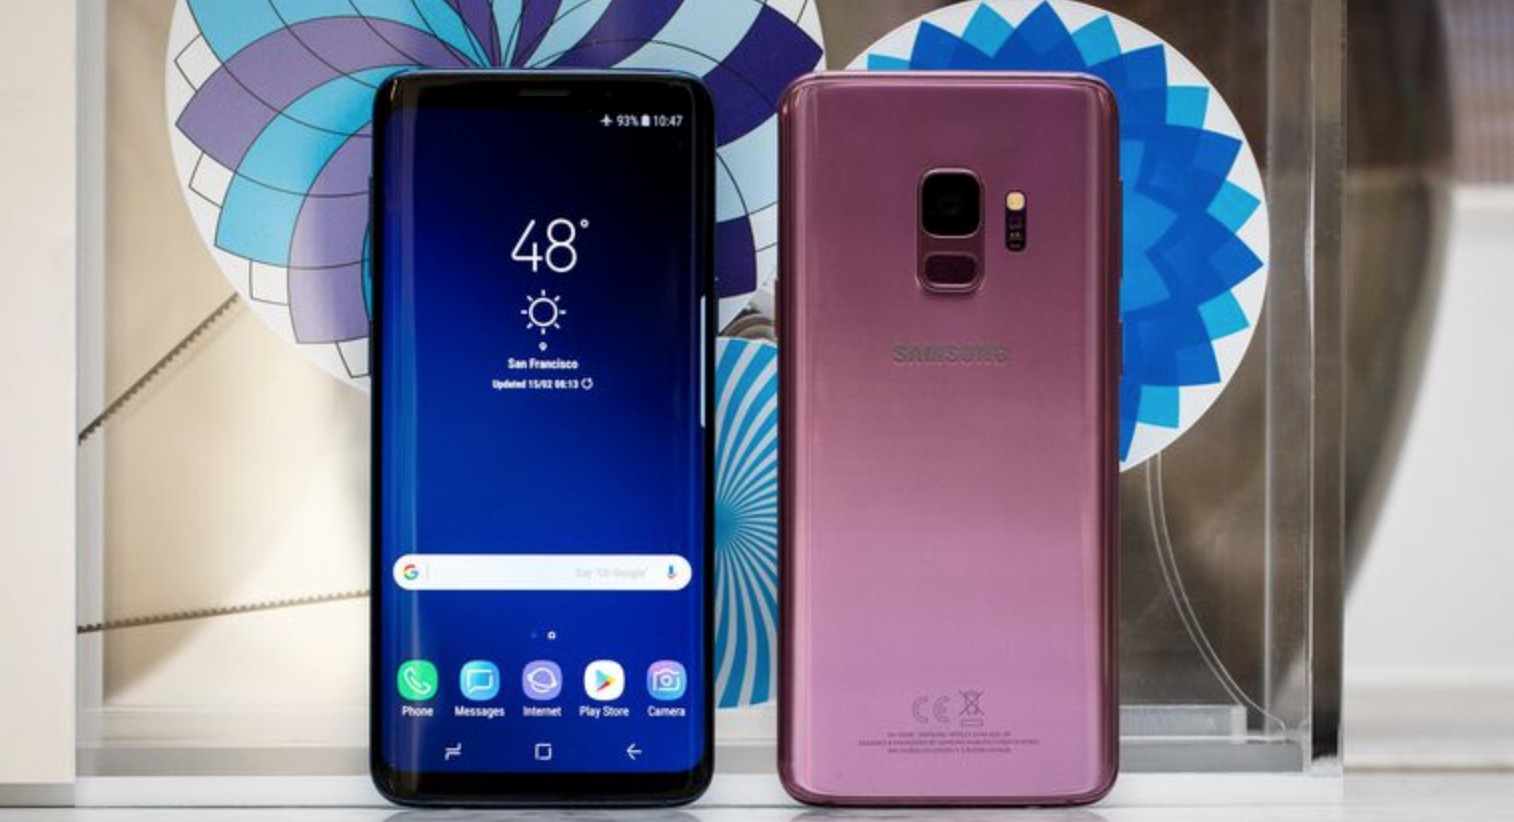 Samsung Galaxy S9 vs iPhone 8 Plus